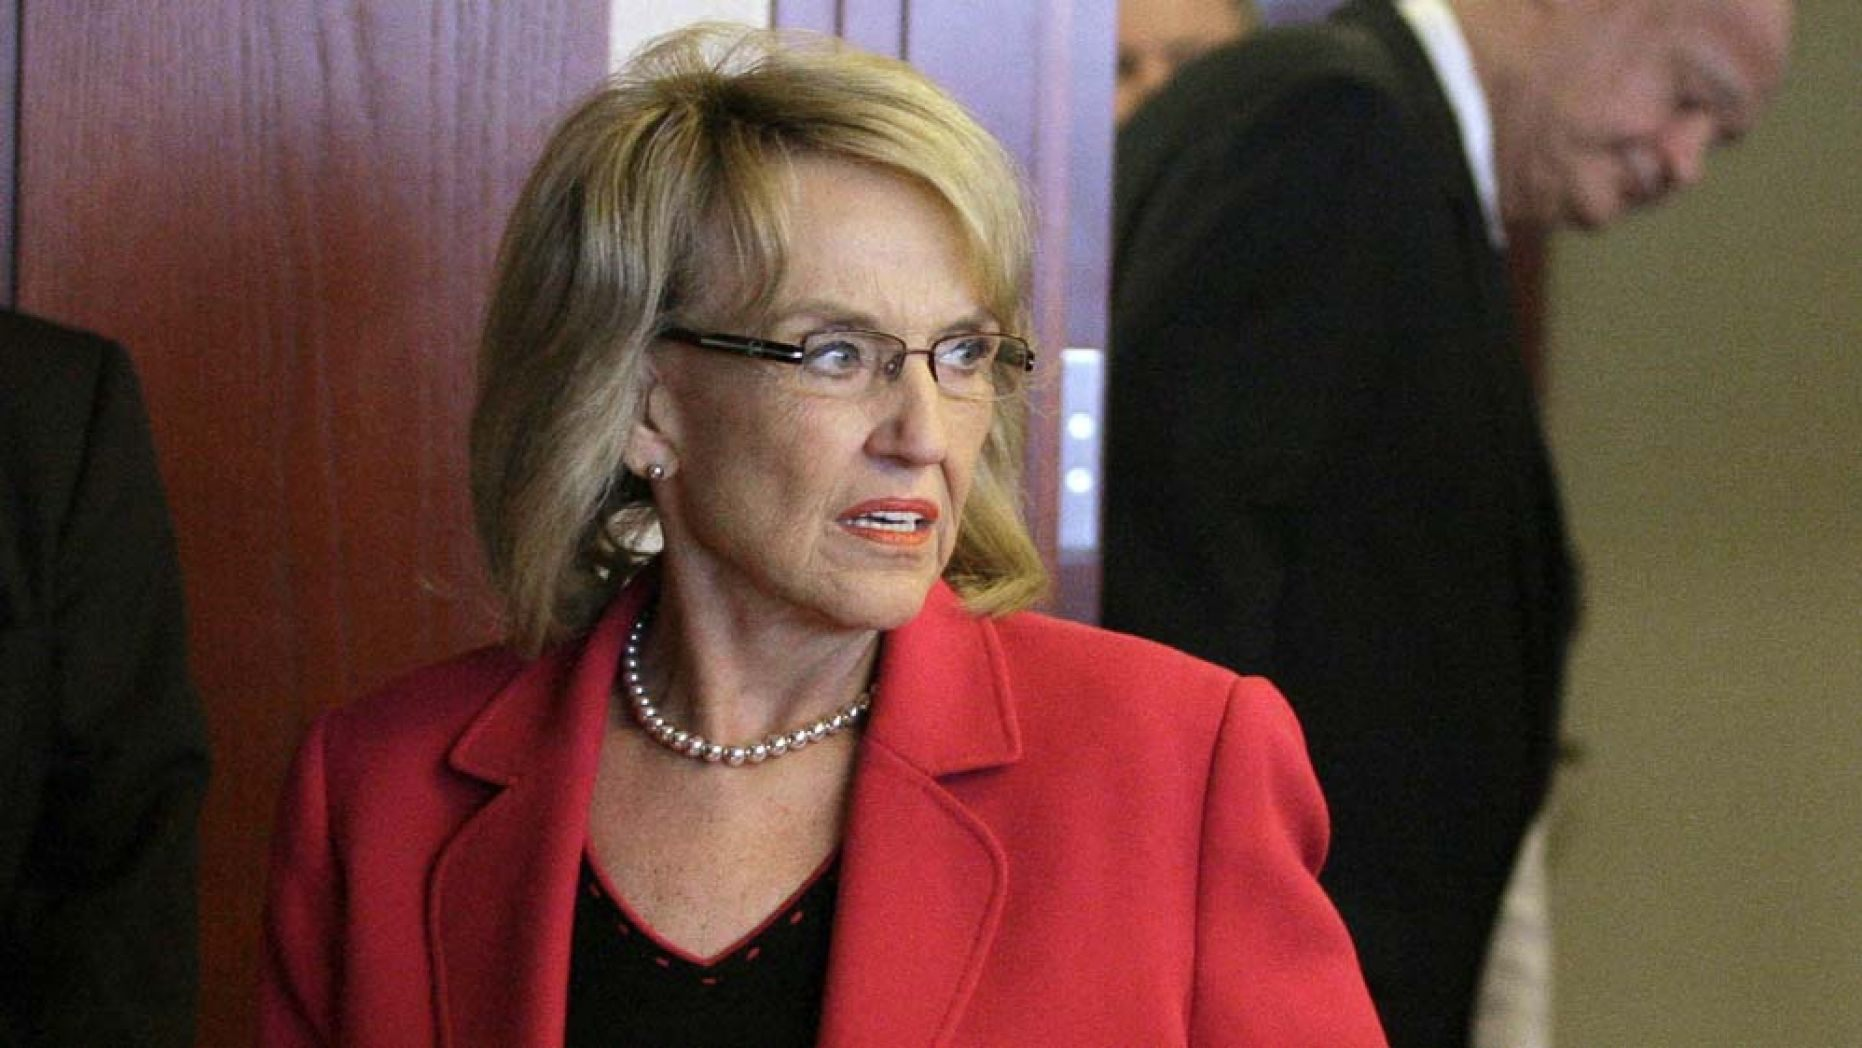 The eldest son of former Republican Arizona Gov. Jan Brewer unexpectedly died over the weekend, the family announced on Monday. (AP)